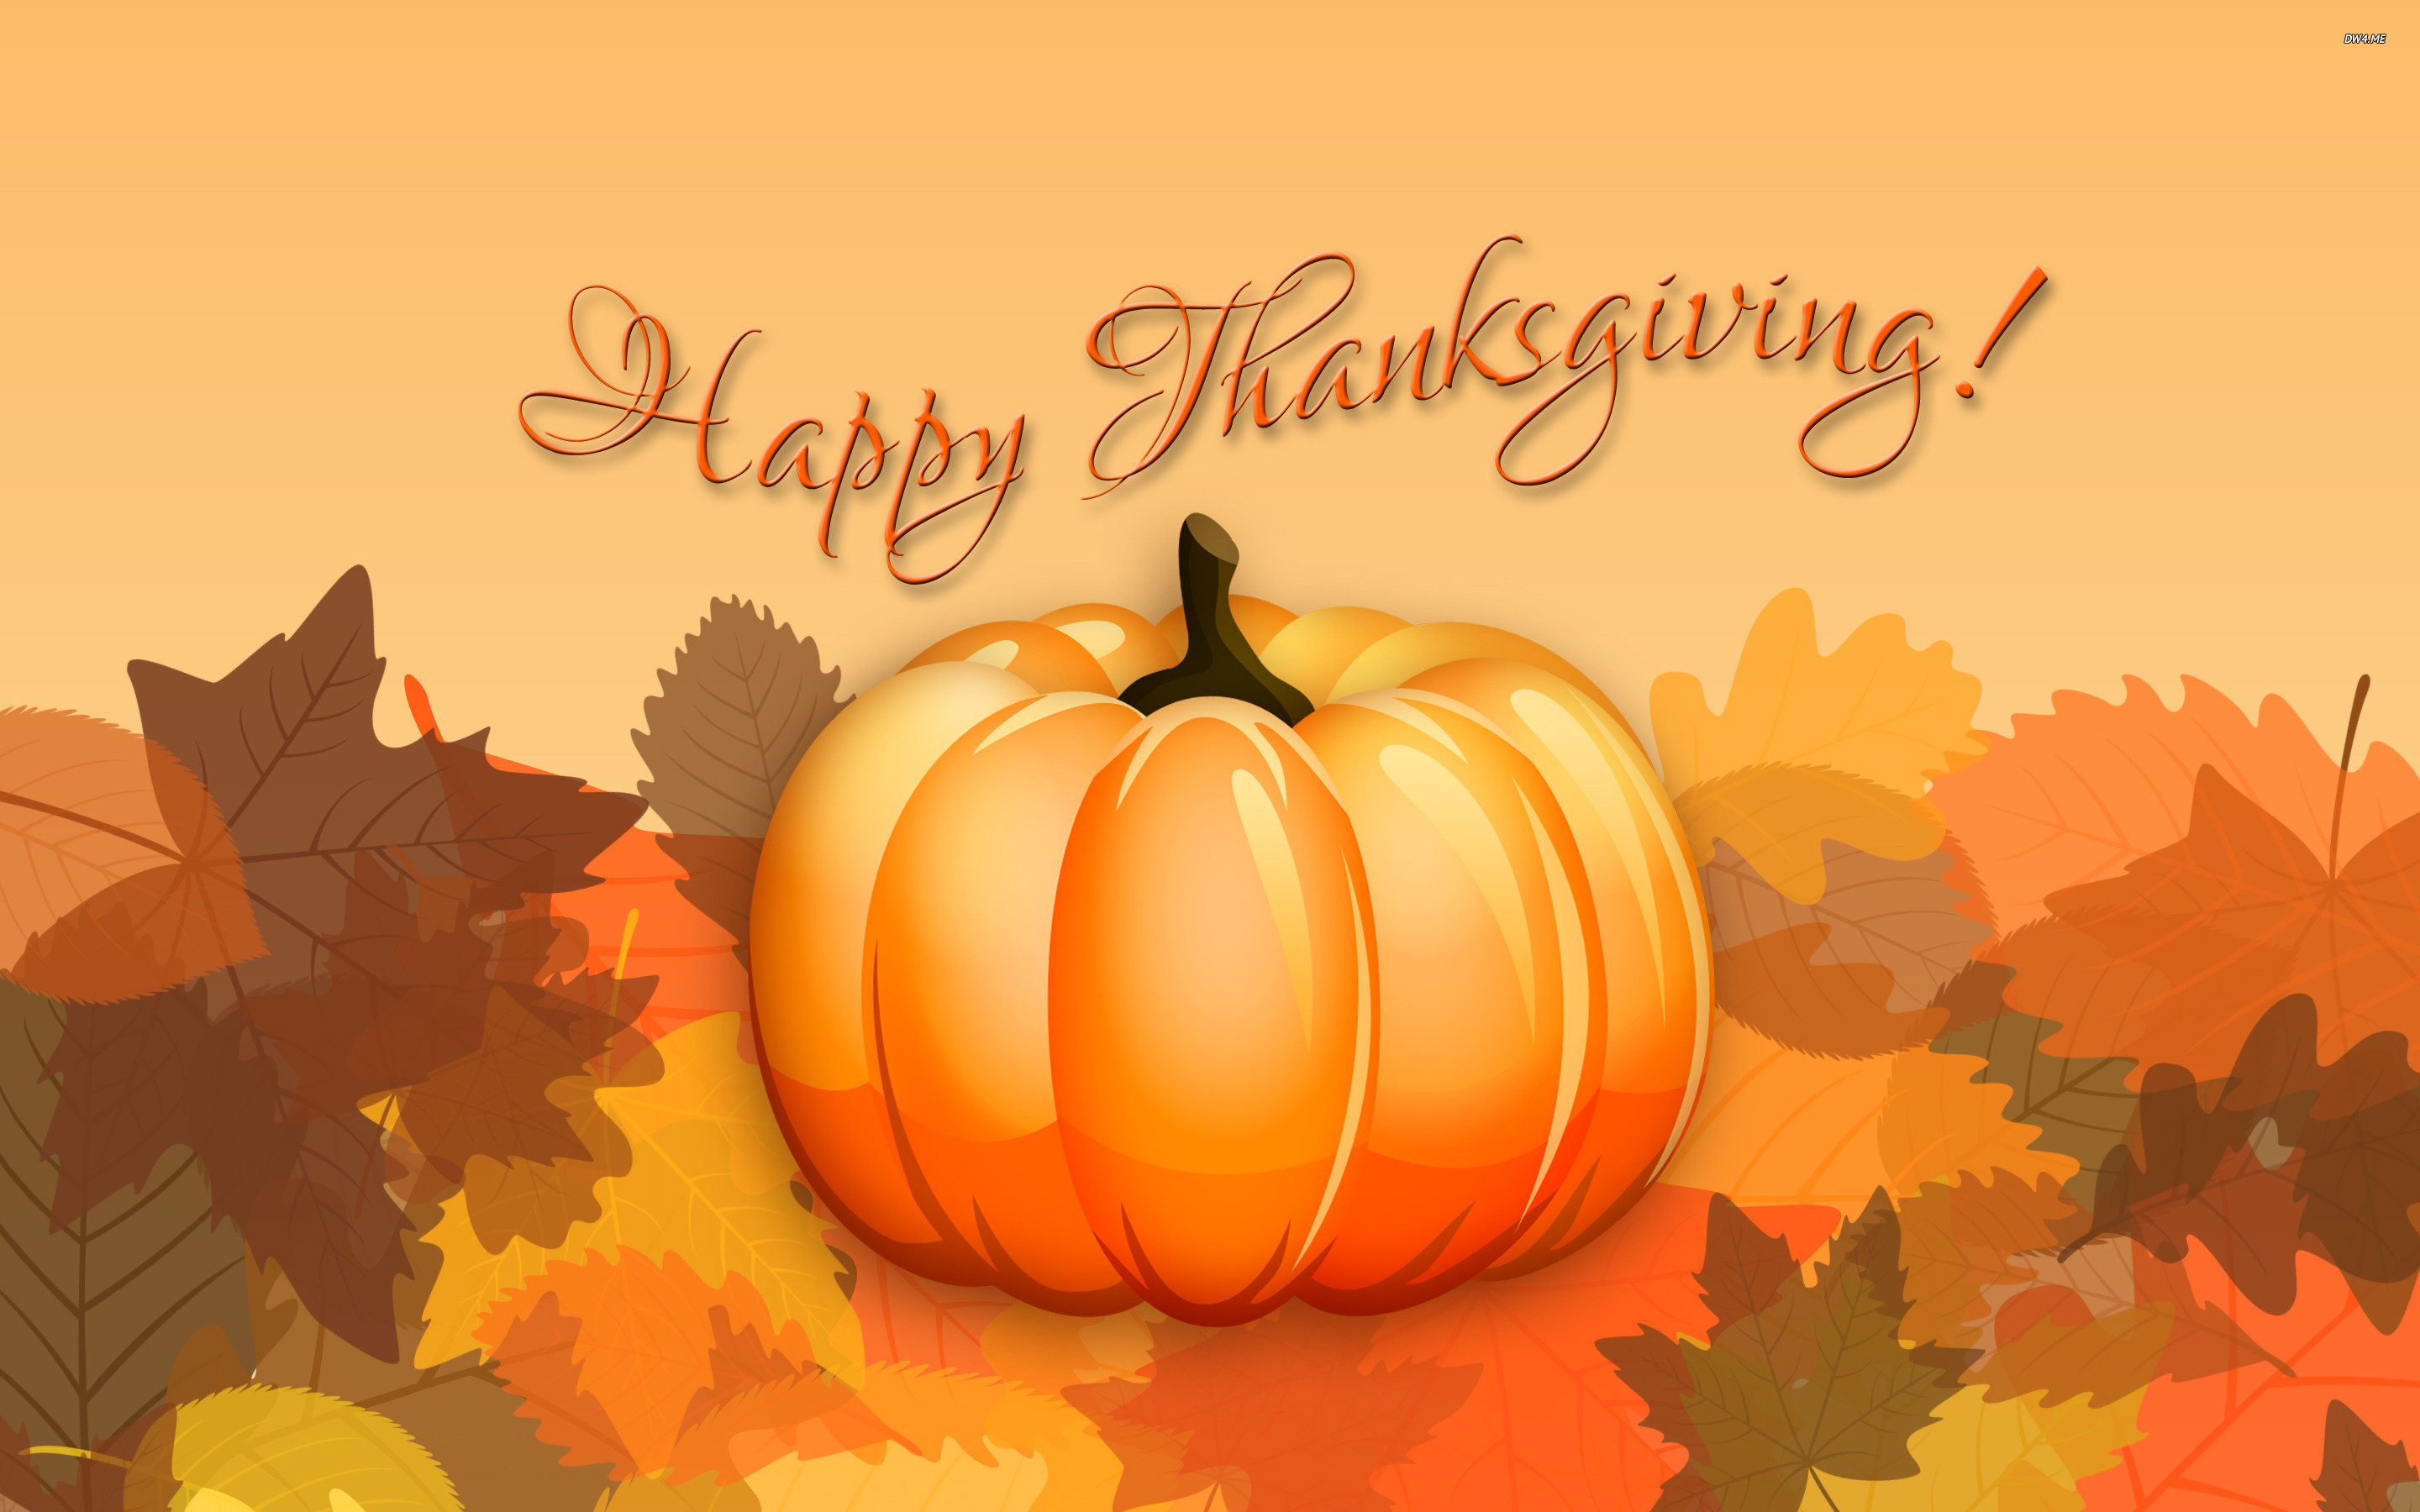 Thanksgiving Turkey Wallpaper  Download the Best Thanksgiving Wallpapers 2015 for Mobile